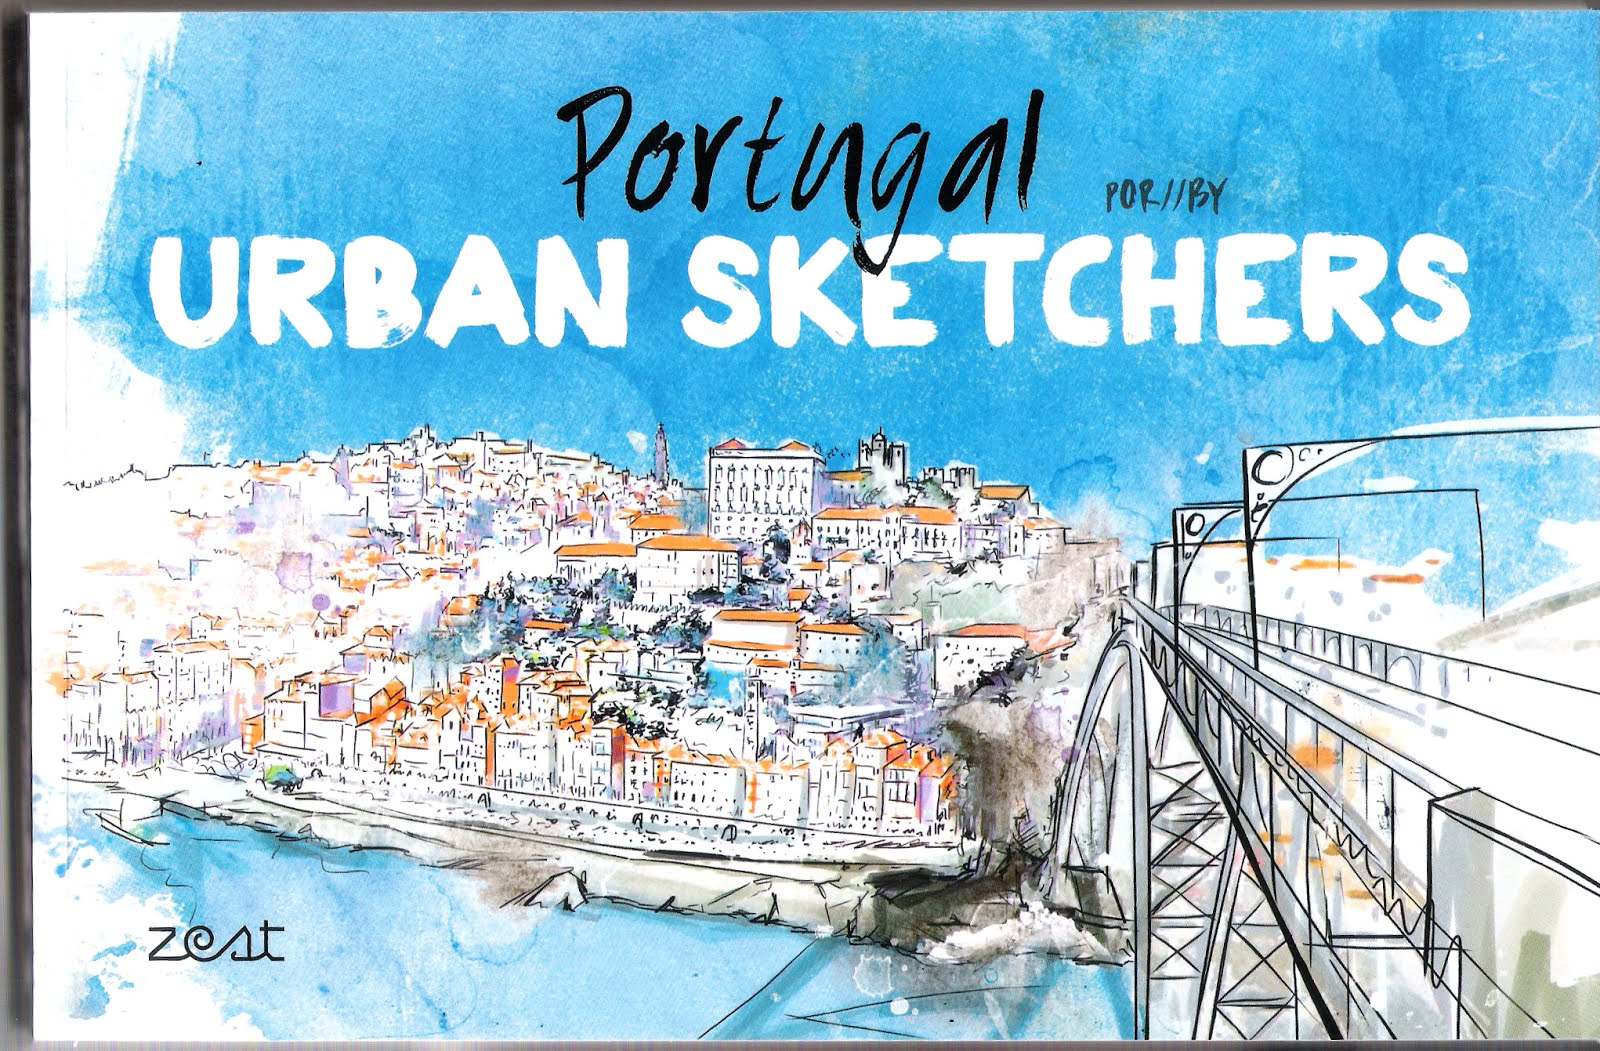 Portugal por/by Urban Sketchers